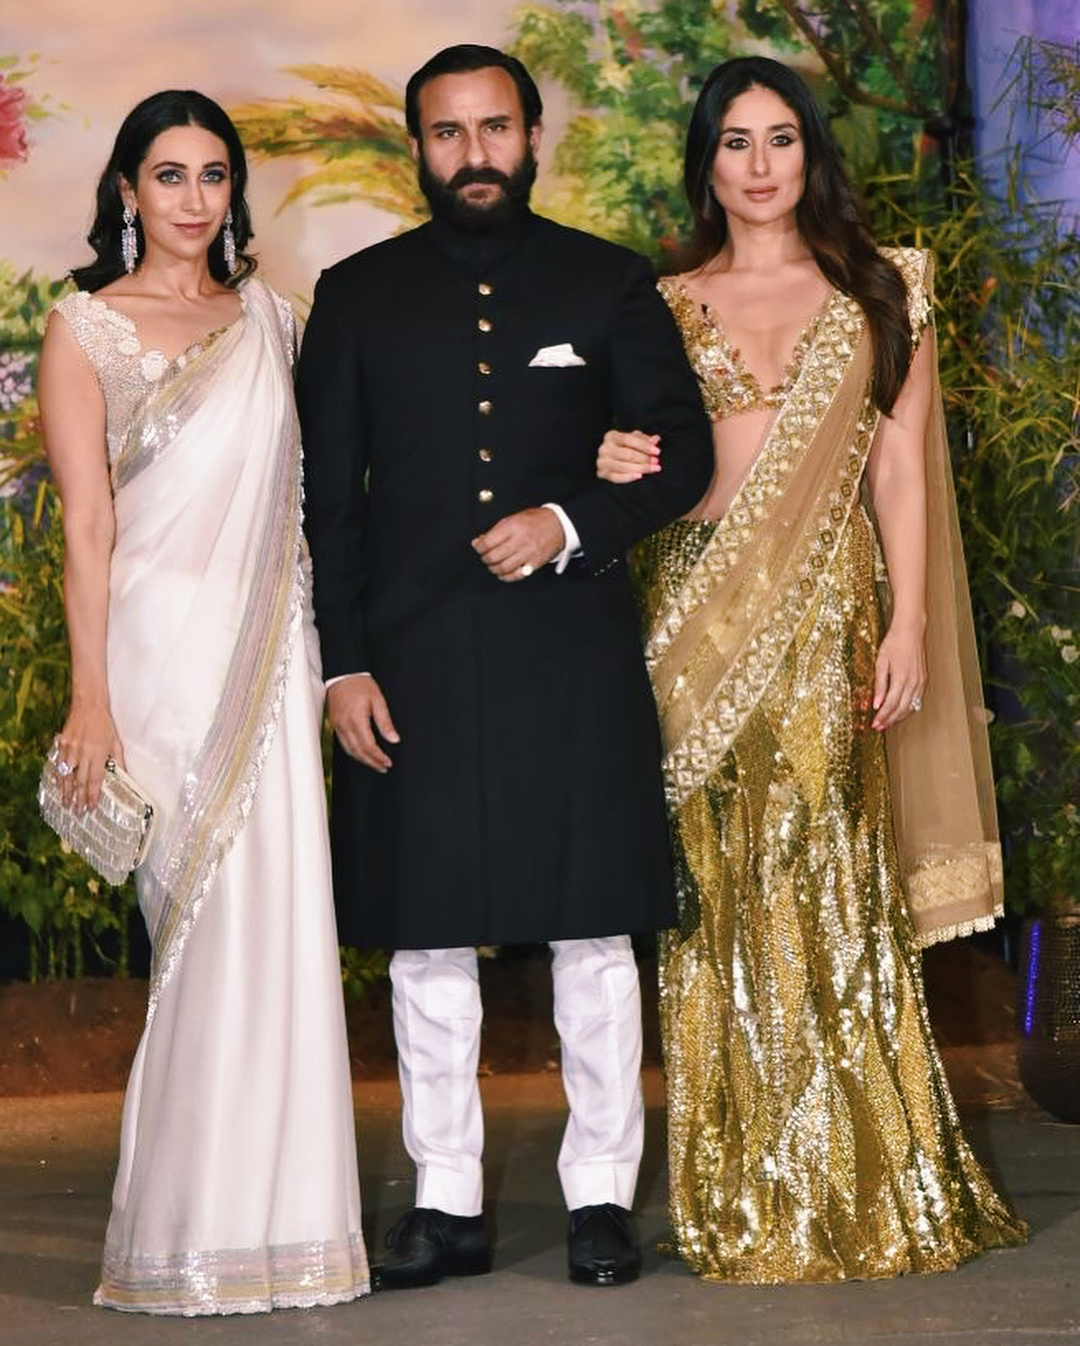 Karisma kapoor saif ali khan kareena kapoor khan at sonam kapoor's wedding